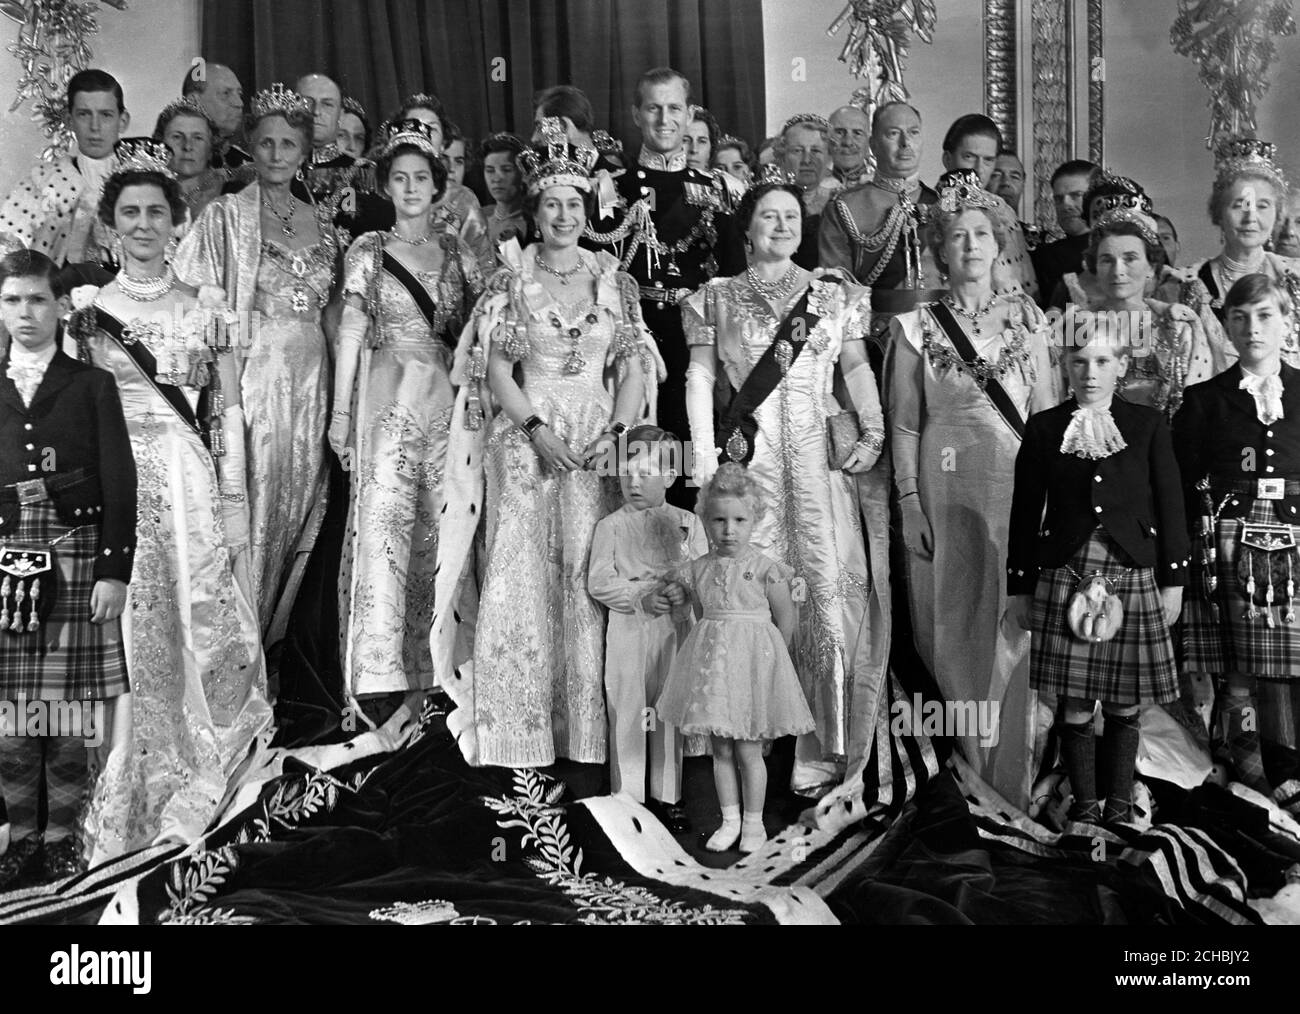 Queen Elizabeth Ii In Her Coronation Robes Photographed With Her Family And Other Members Of The Royal Family In The Throne Room At Buckingham Palace Stock Photo Alamy